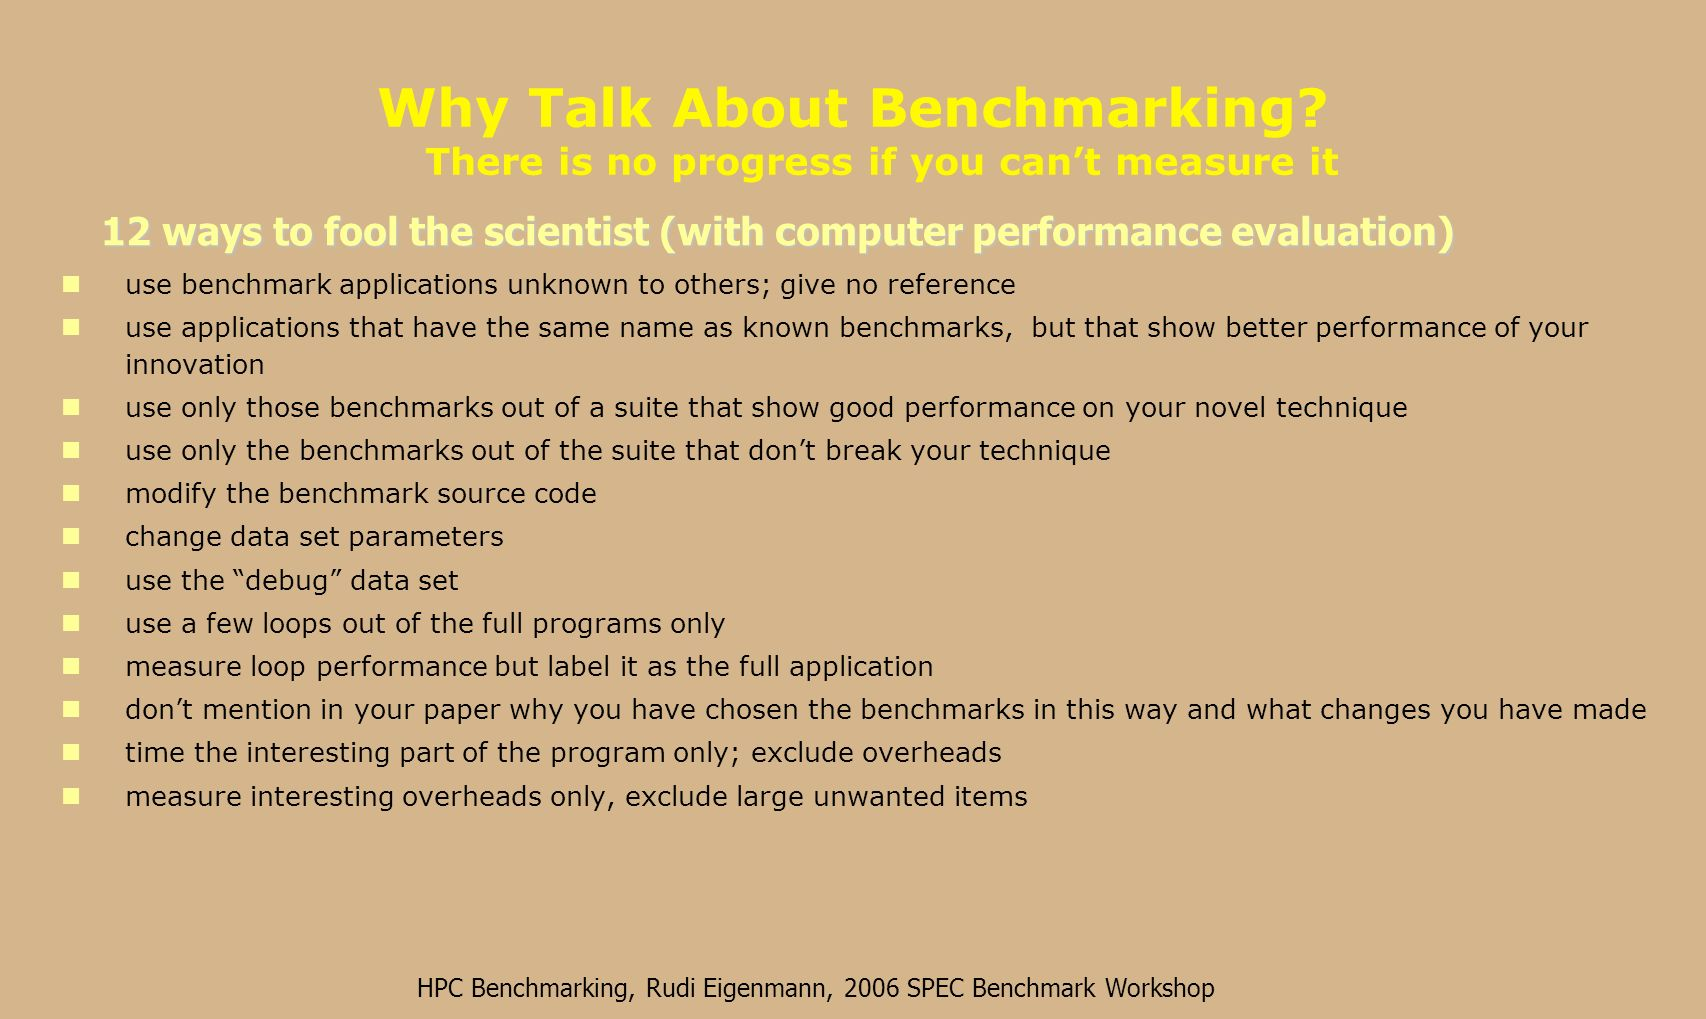 HPC Benchmarking, Rudi Eigenmann, 2006 SPEC Benchmark Workshop this is important for machine procurements and for understanding where HPC technology is heading HPC Benchmarking and Performance Evaluation With Realistic Applications Brian Armstrong, Hansang Bae, Rudolf Eigenmann, Faisal Saied, Mohamed, Sayeed, Yili Zheng Purdue University Benchmarking has two important goals 1.